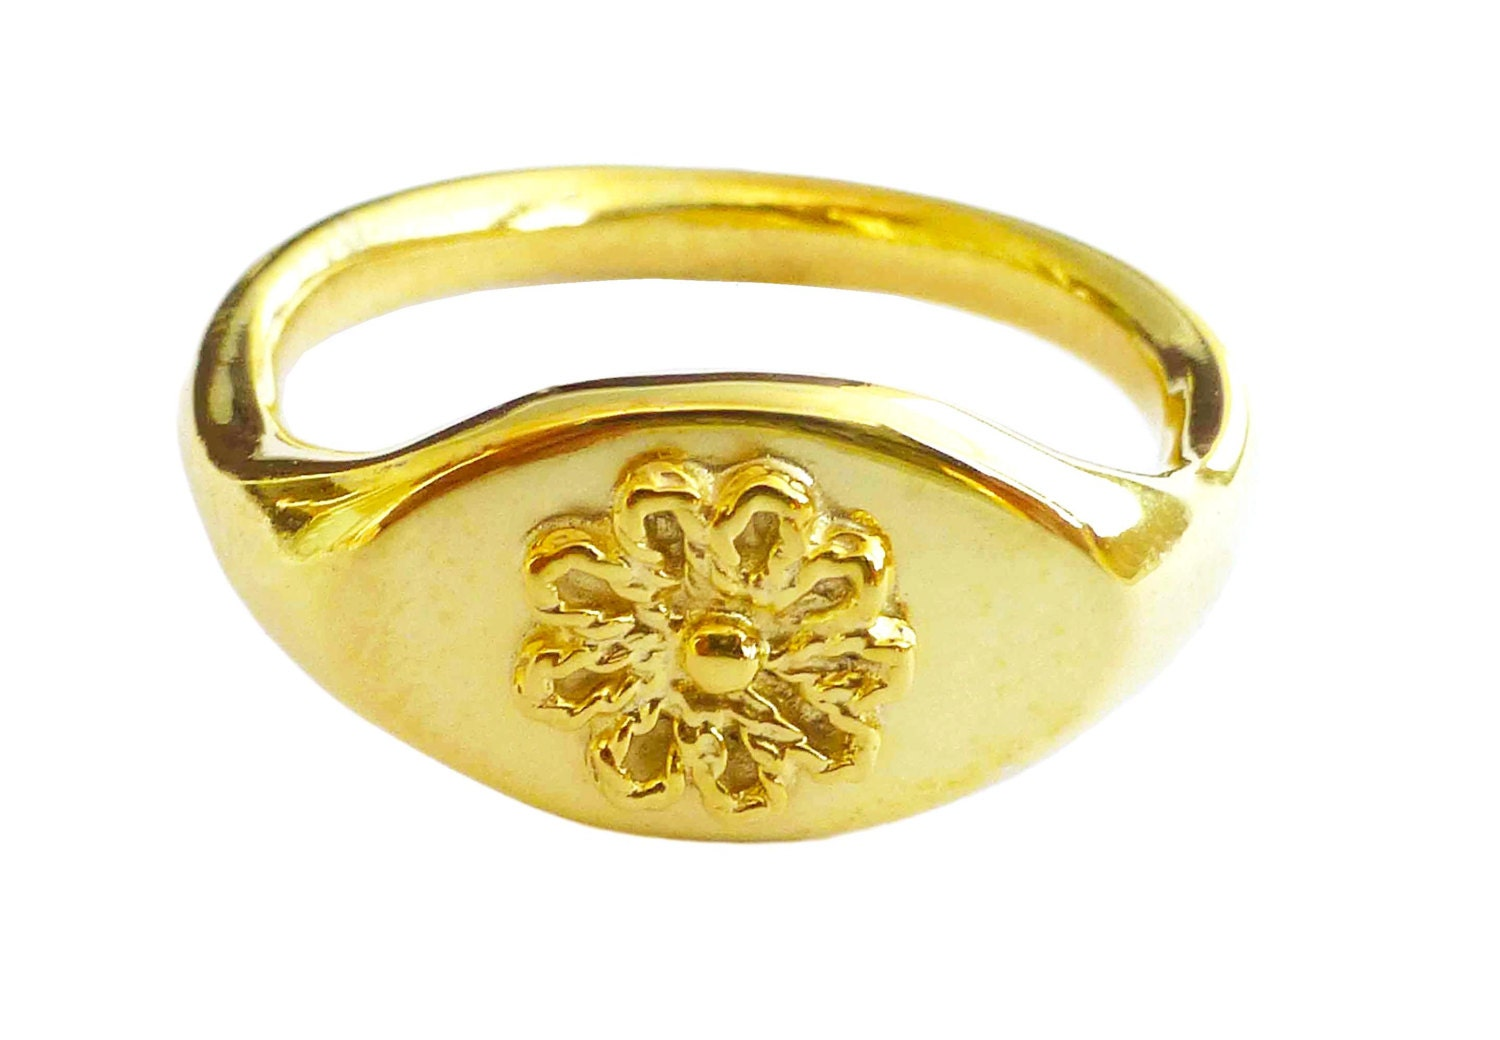 Signet Ring 18k Solid Gold Pinky Ring Elegant Yellow Gold